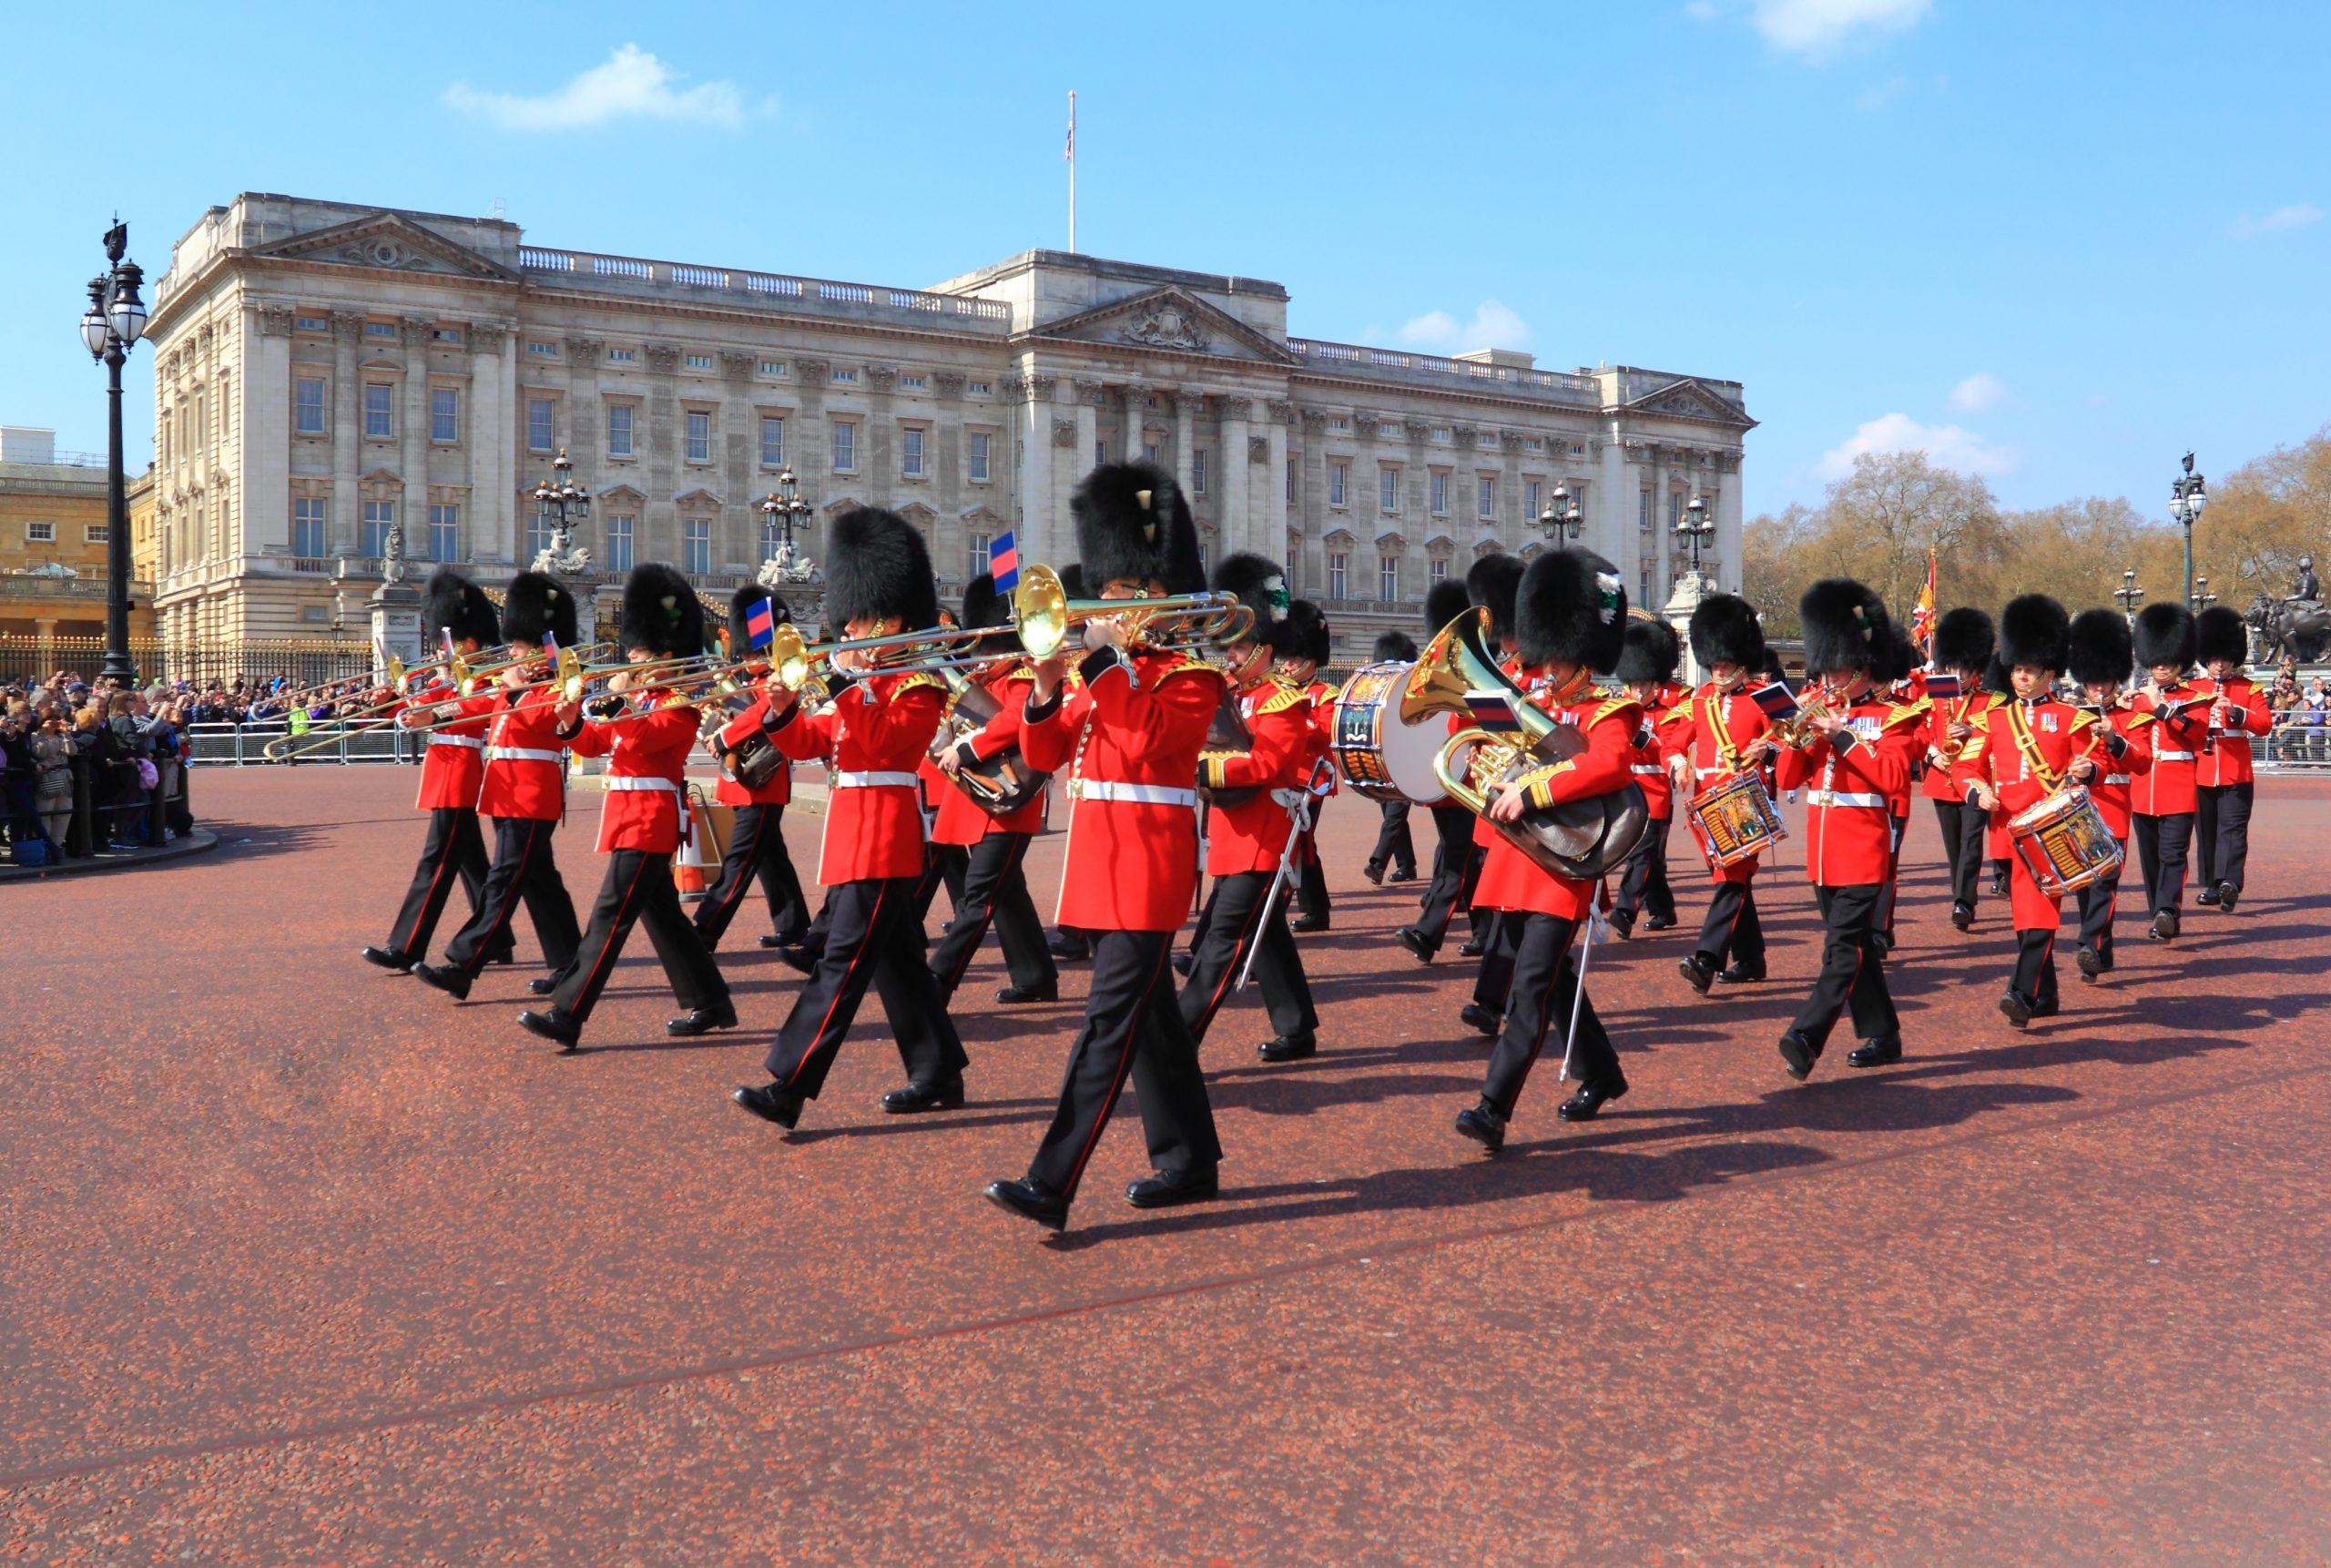 Buckingham Palace and the red British guards